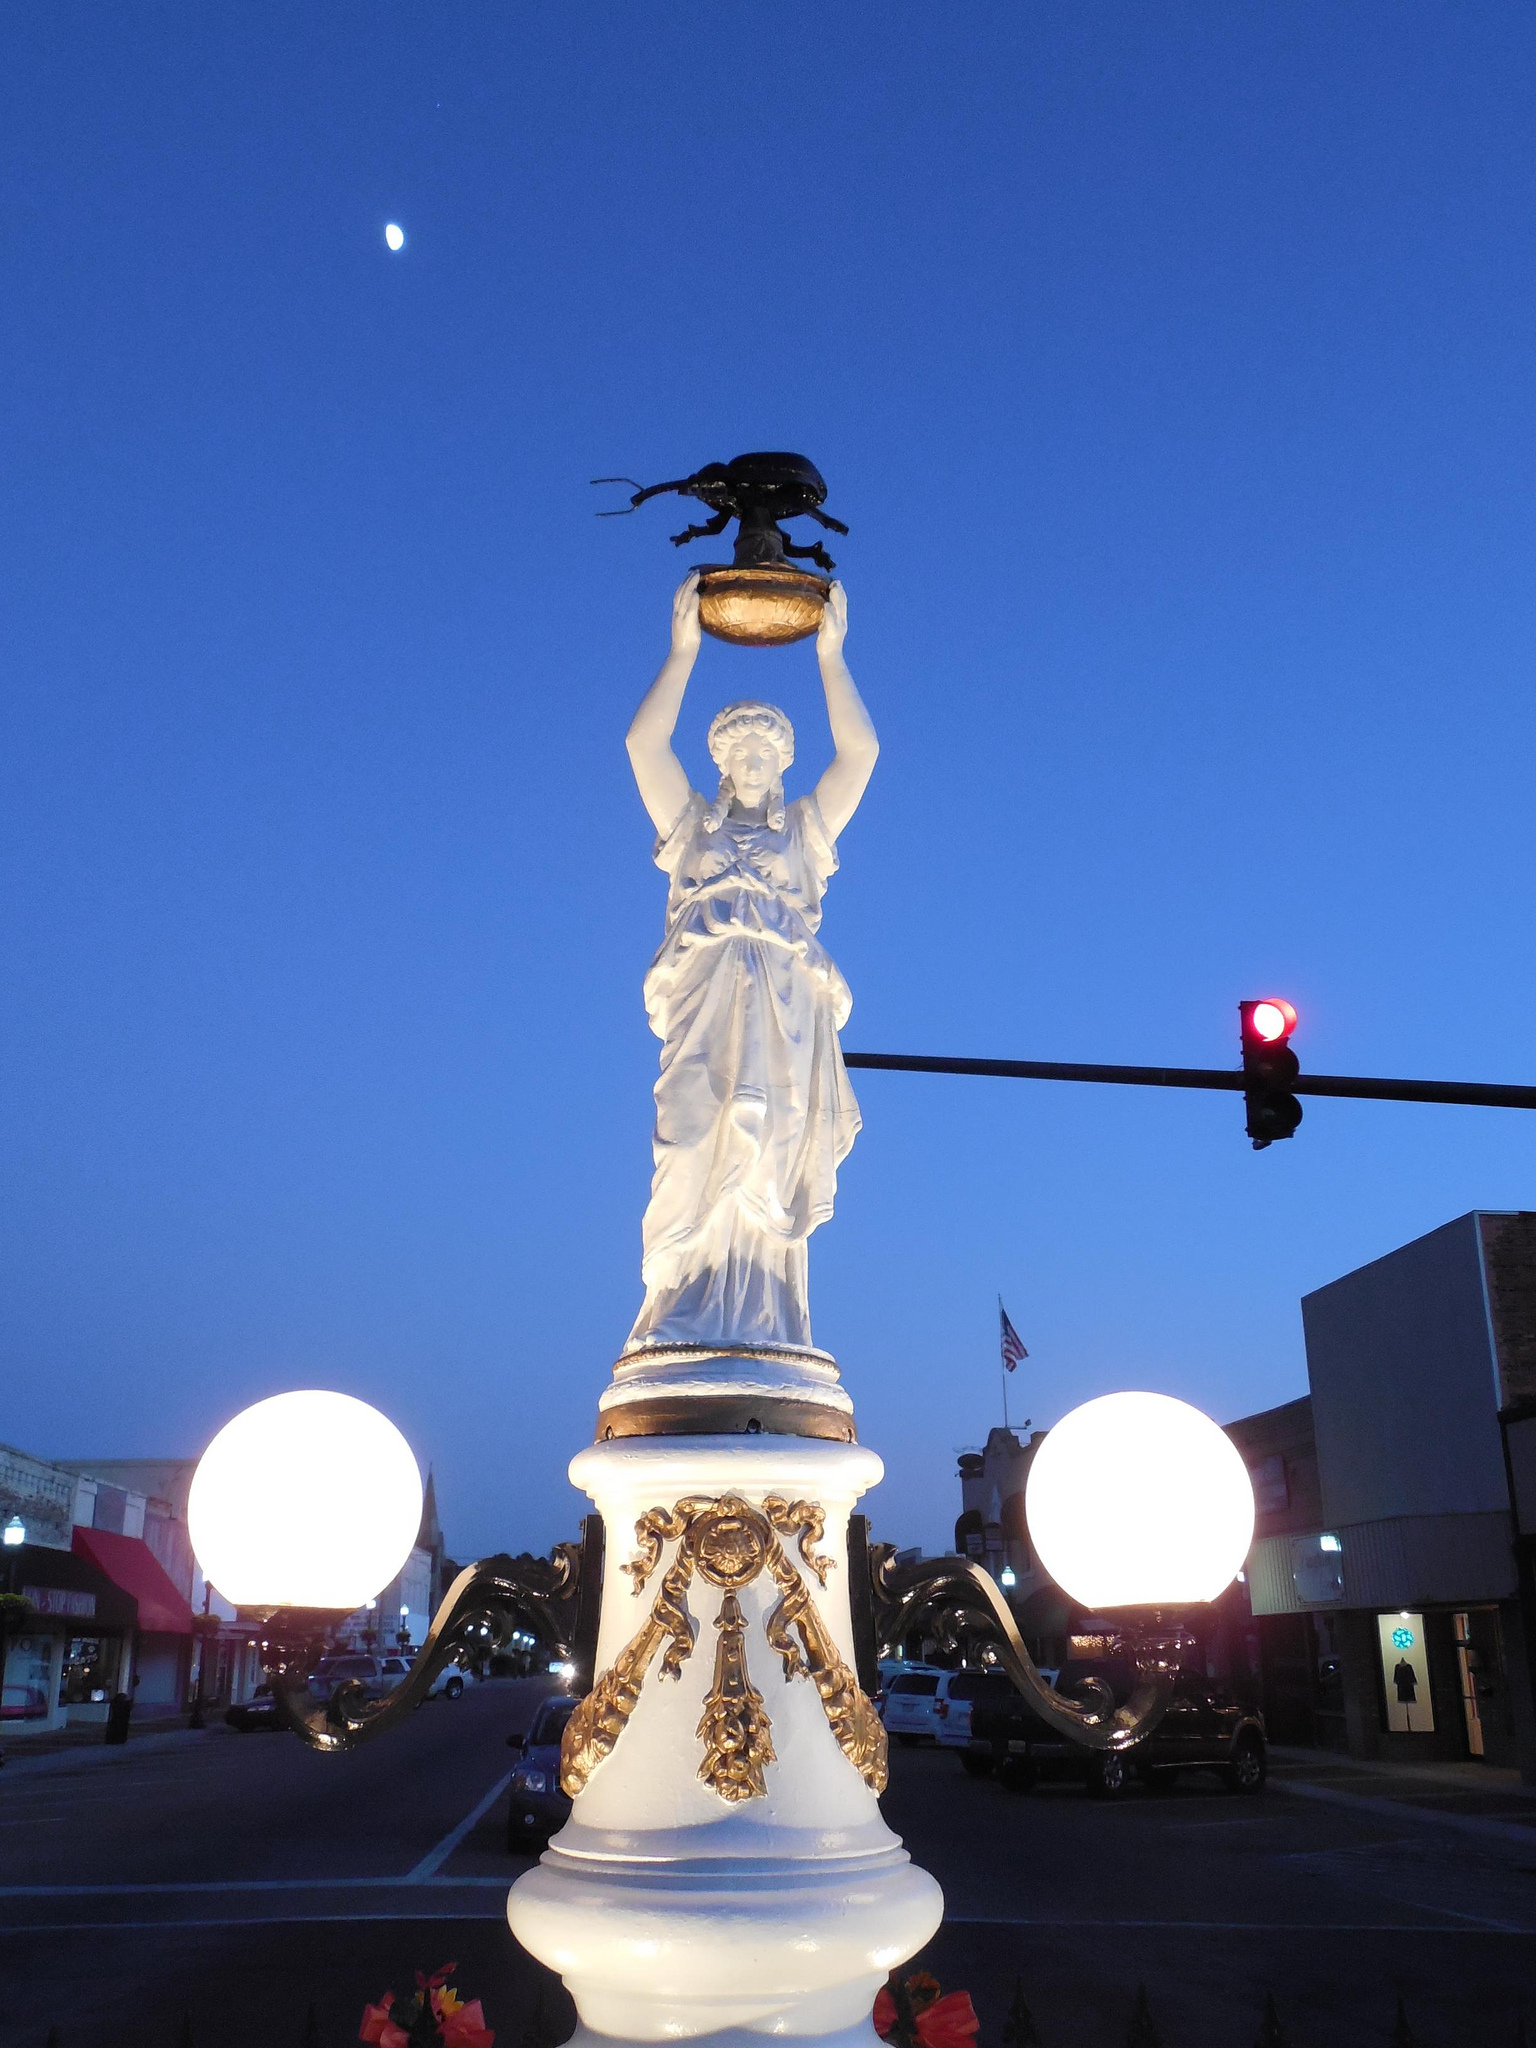 """The Boll Weevil Monument"" by Jimmy Emerson via Flickr Creative Commons"